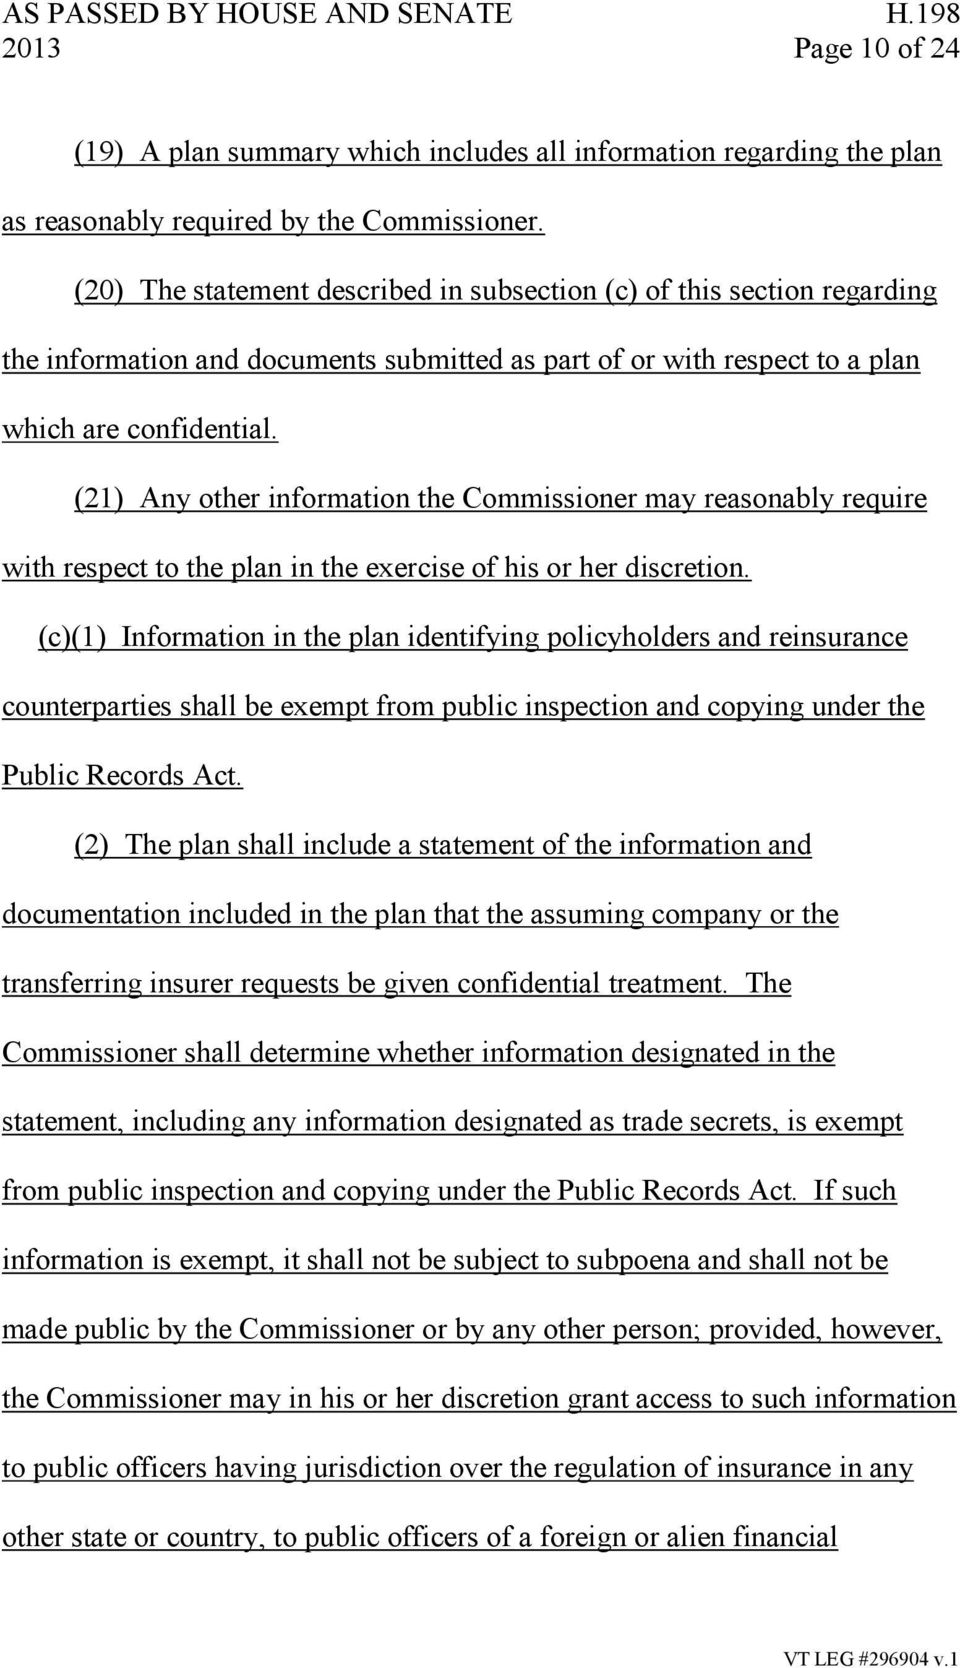 (21) Any other information the Commissioner may reasonably require with respect to the plan in the exercise of his or her discretion.